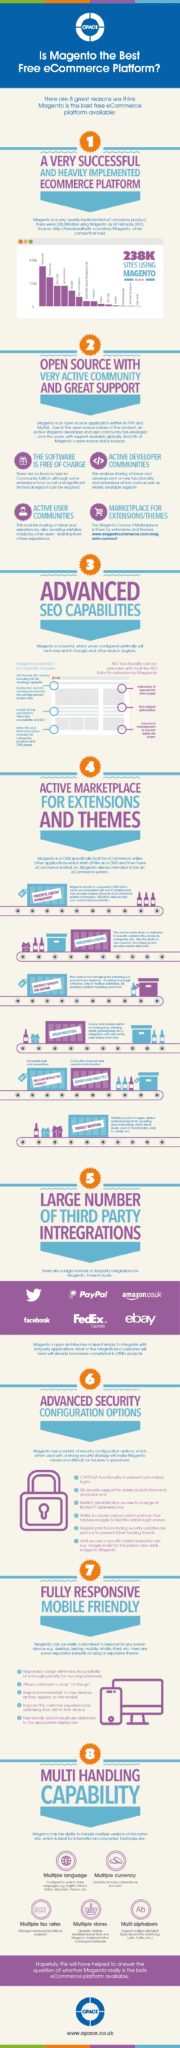 Infographic to look at whether Magento is the best free ecommerce platform